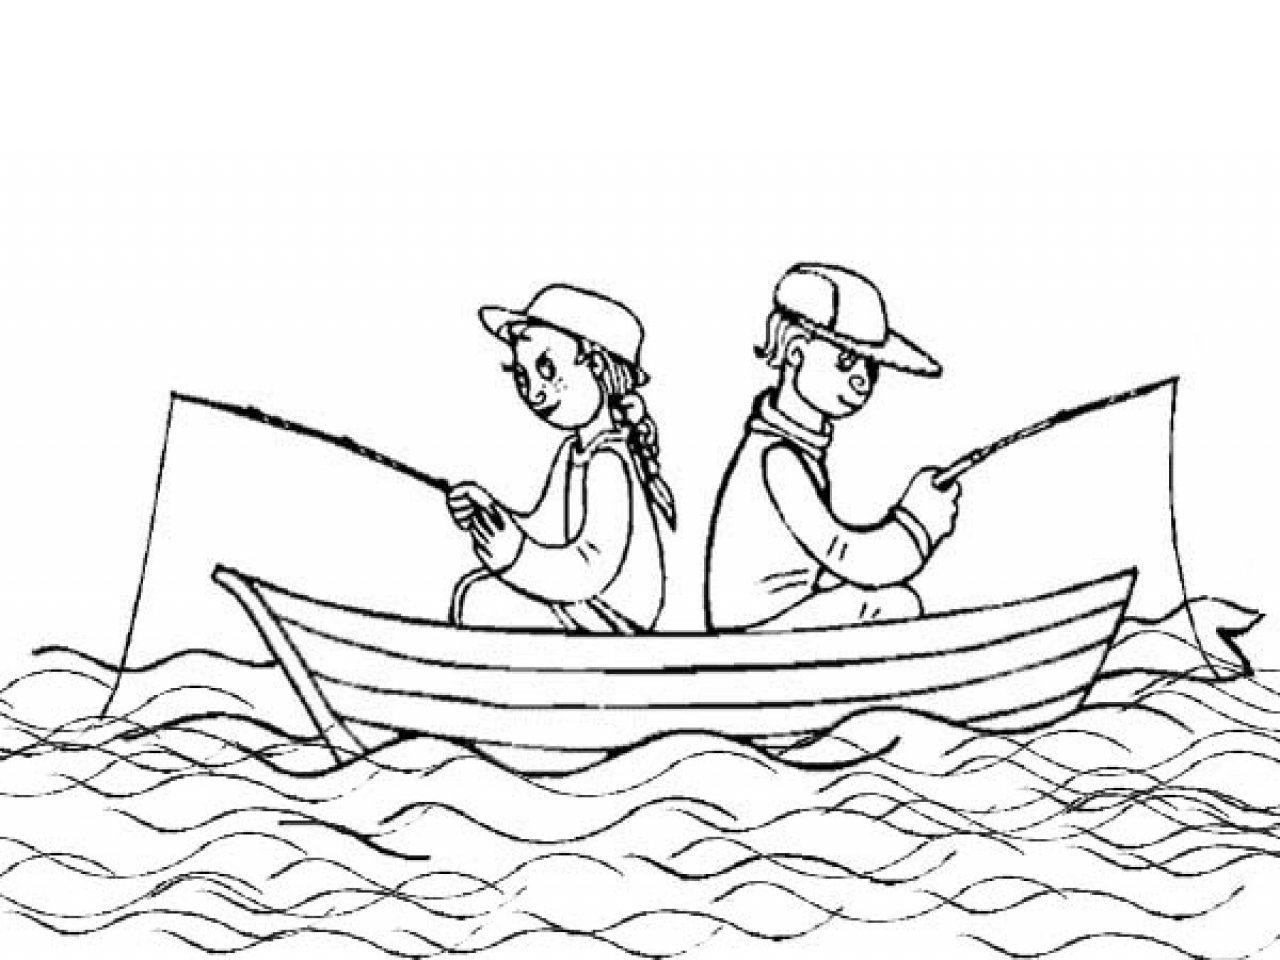 Rowing Boat Drawing at GetDrawings.com | Free for personal use ...